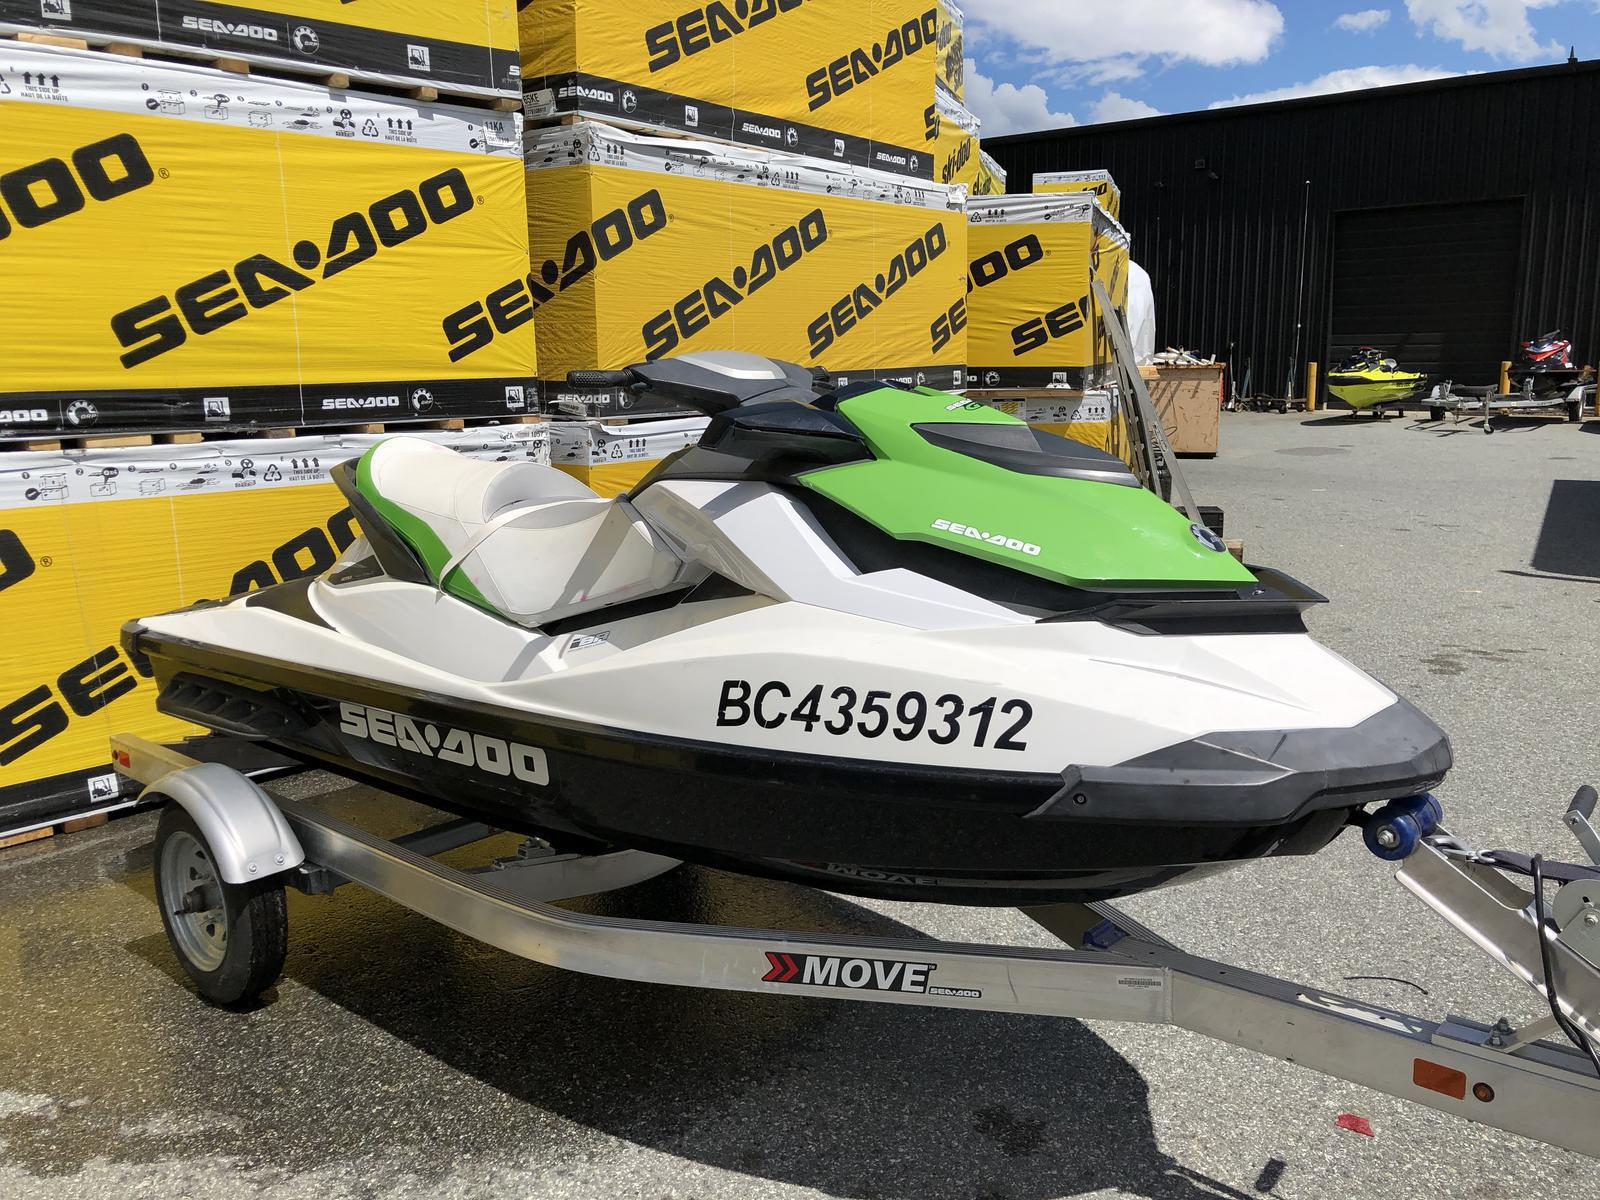 2013 Sea-Doo PW GTI 130 W/LG 13 for sale in Squamish, BC  No